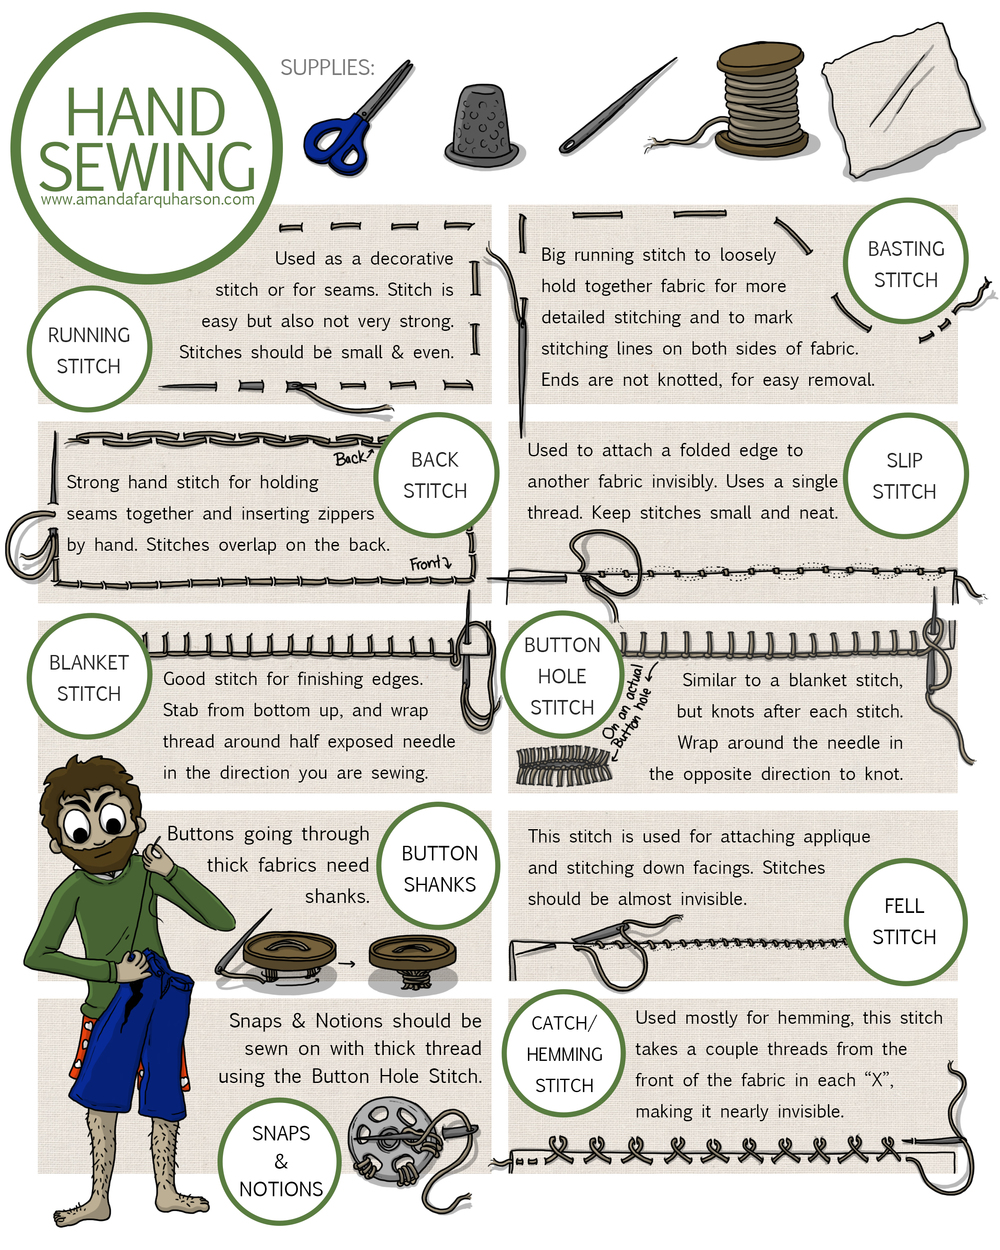 8 Most Helpful Hand Sewing Stitches.jpg